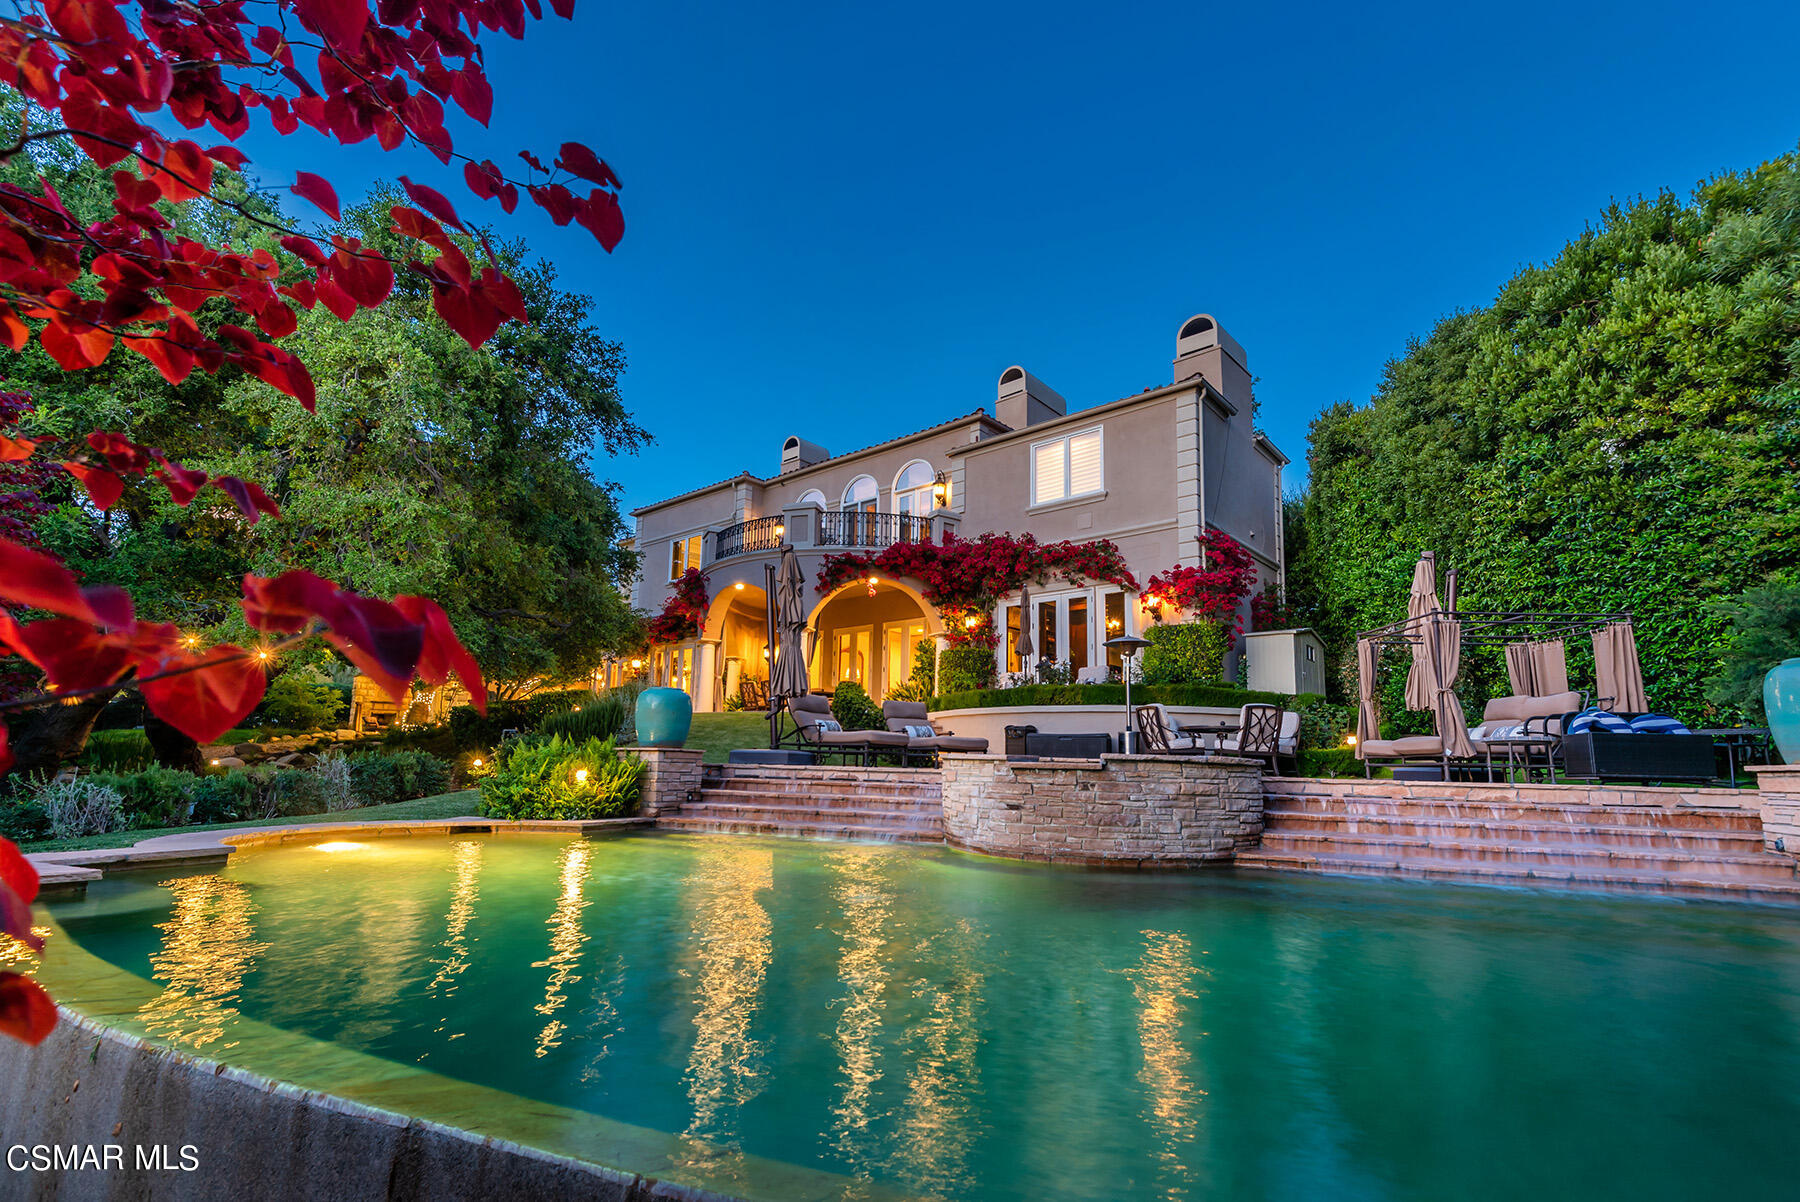 Absolutely stunning custom Mediterranean with a premier end of cul-de-sac location in the prestigious gated community, Emerald Forest  of North Ranch! A magical setting boasting mature oaks, complete privacy and  sensational views of the golf course. Interior features include a grand two story entrance with floating staircase. Other features include a second story bonus/billiards room, separate paneled office/library, 5 bedrooms with four up and one down, 5.5 baths and much more. The master suite boasts a huge viewing balcony, fireplace and also provides two walk in closets. The recently remodeled center island kitchen has all new top of the line appliances, custom  cabinetry and quartzite counters. The rear grounds are simply spectacular with an infinity pebble tech pool and spa, basketball/sports court, custom fountains, outdoor fireplace, covered patios, cascading pond, barbecue center and tremendous pathways through a breathtaking oak tree forest. A truly remarkable setting! Other amenities include a second story laundry room, surround sound and security cameras, remodeled gym, newer LED lighting, finished over sized three car garage and much more.